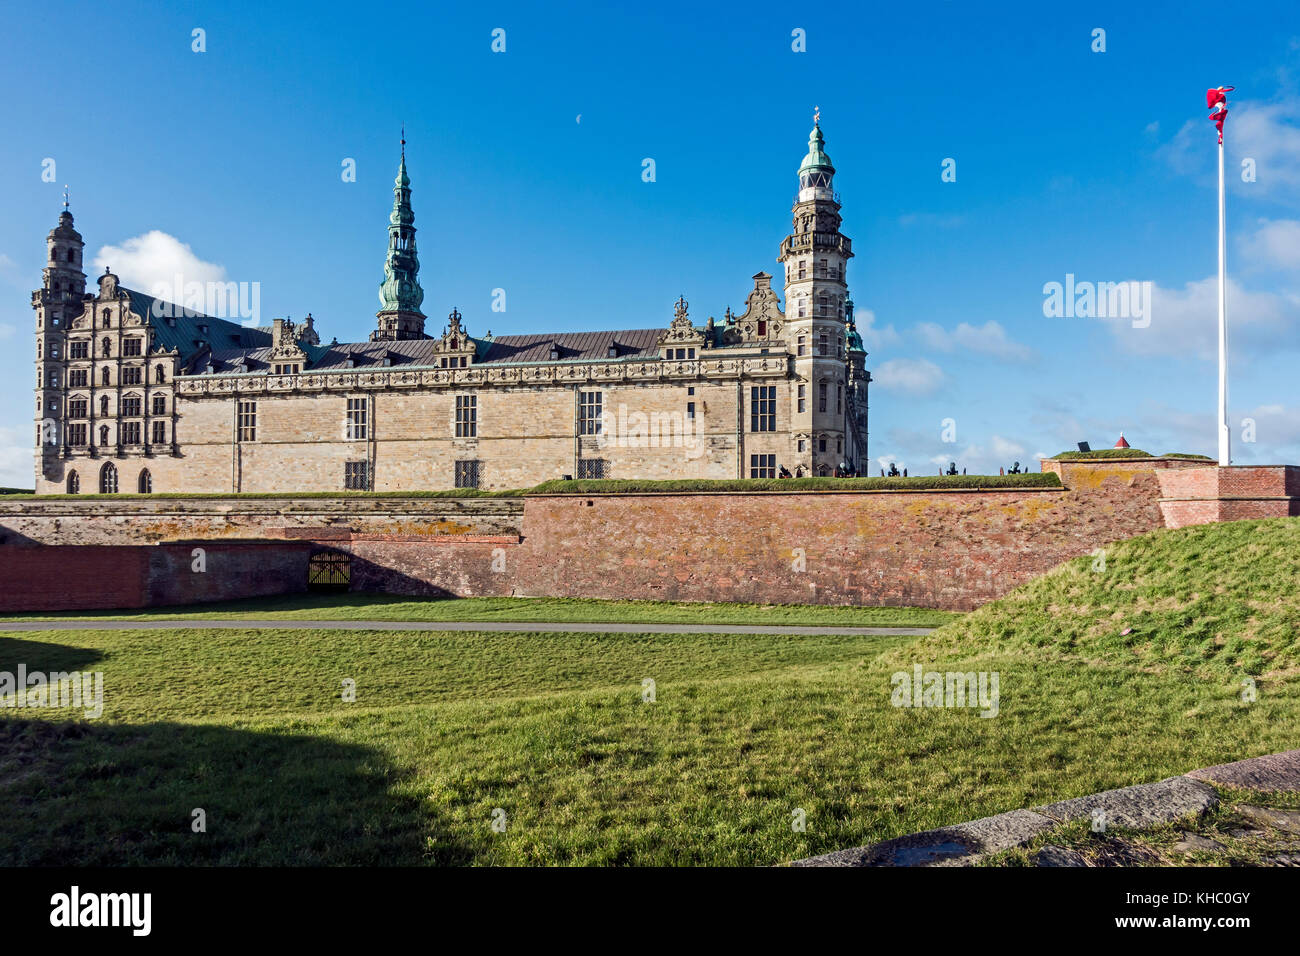 Kronborg Slot (Castle) in Elsinore Denmark Europe - Stock Image